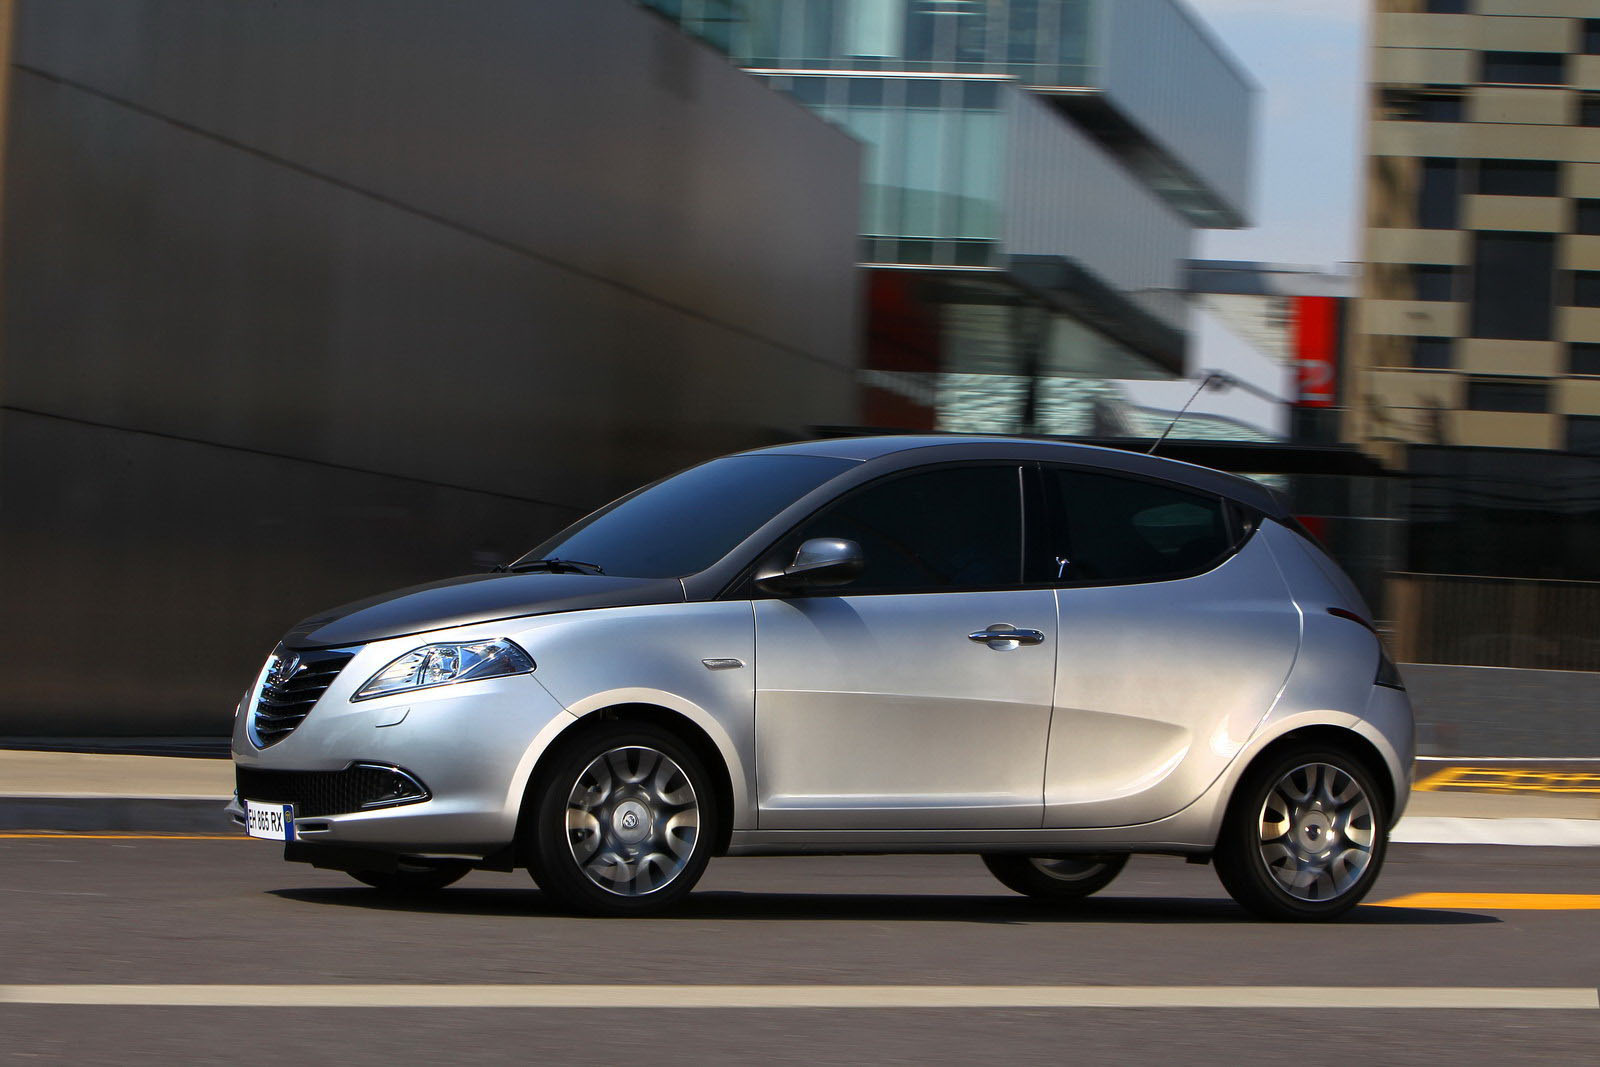 Lancia Ypsilon 45 SMARTY LANCIA 2012 YPSILON GETS CLICKED